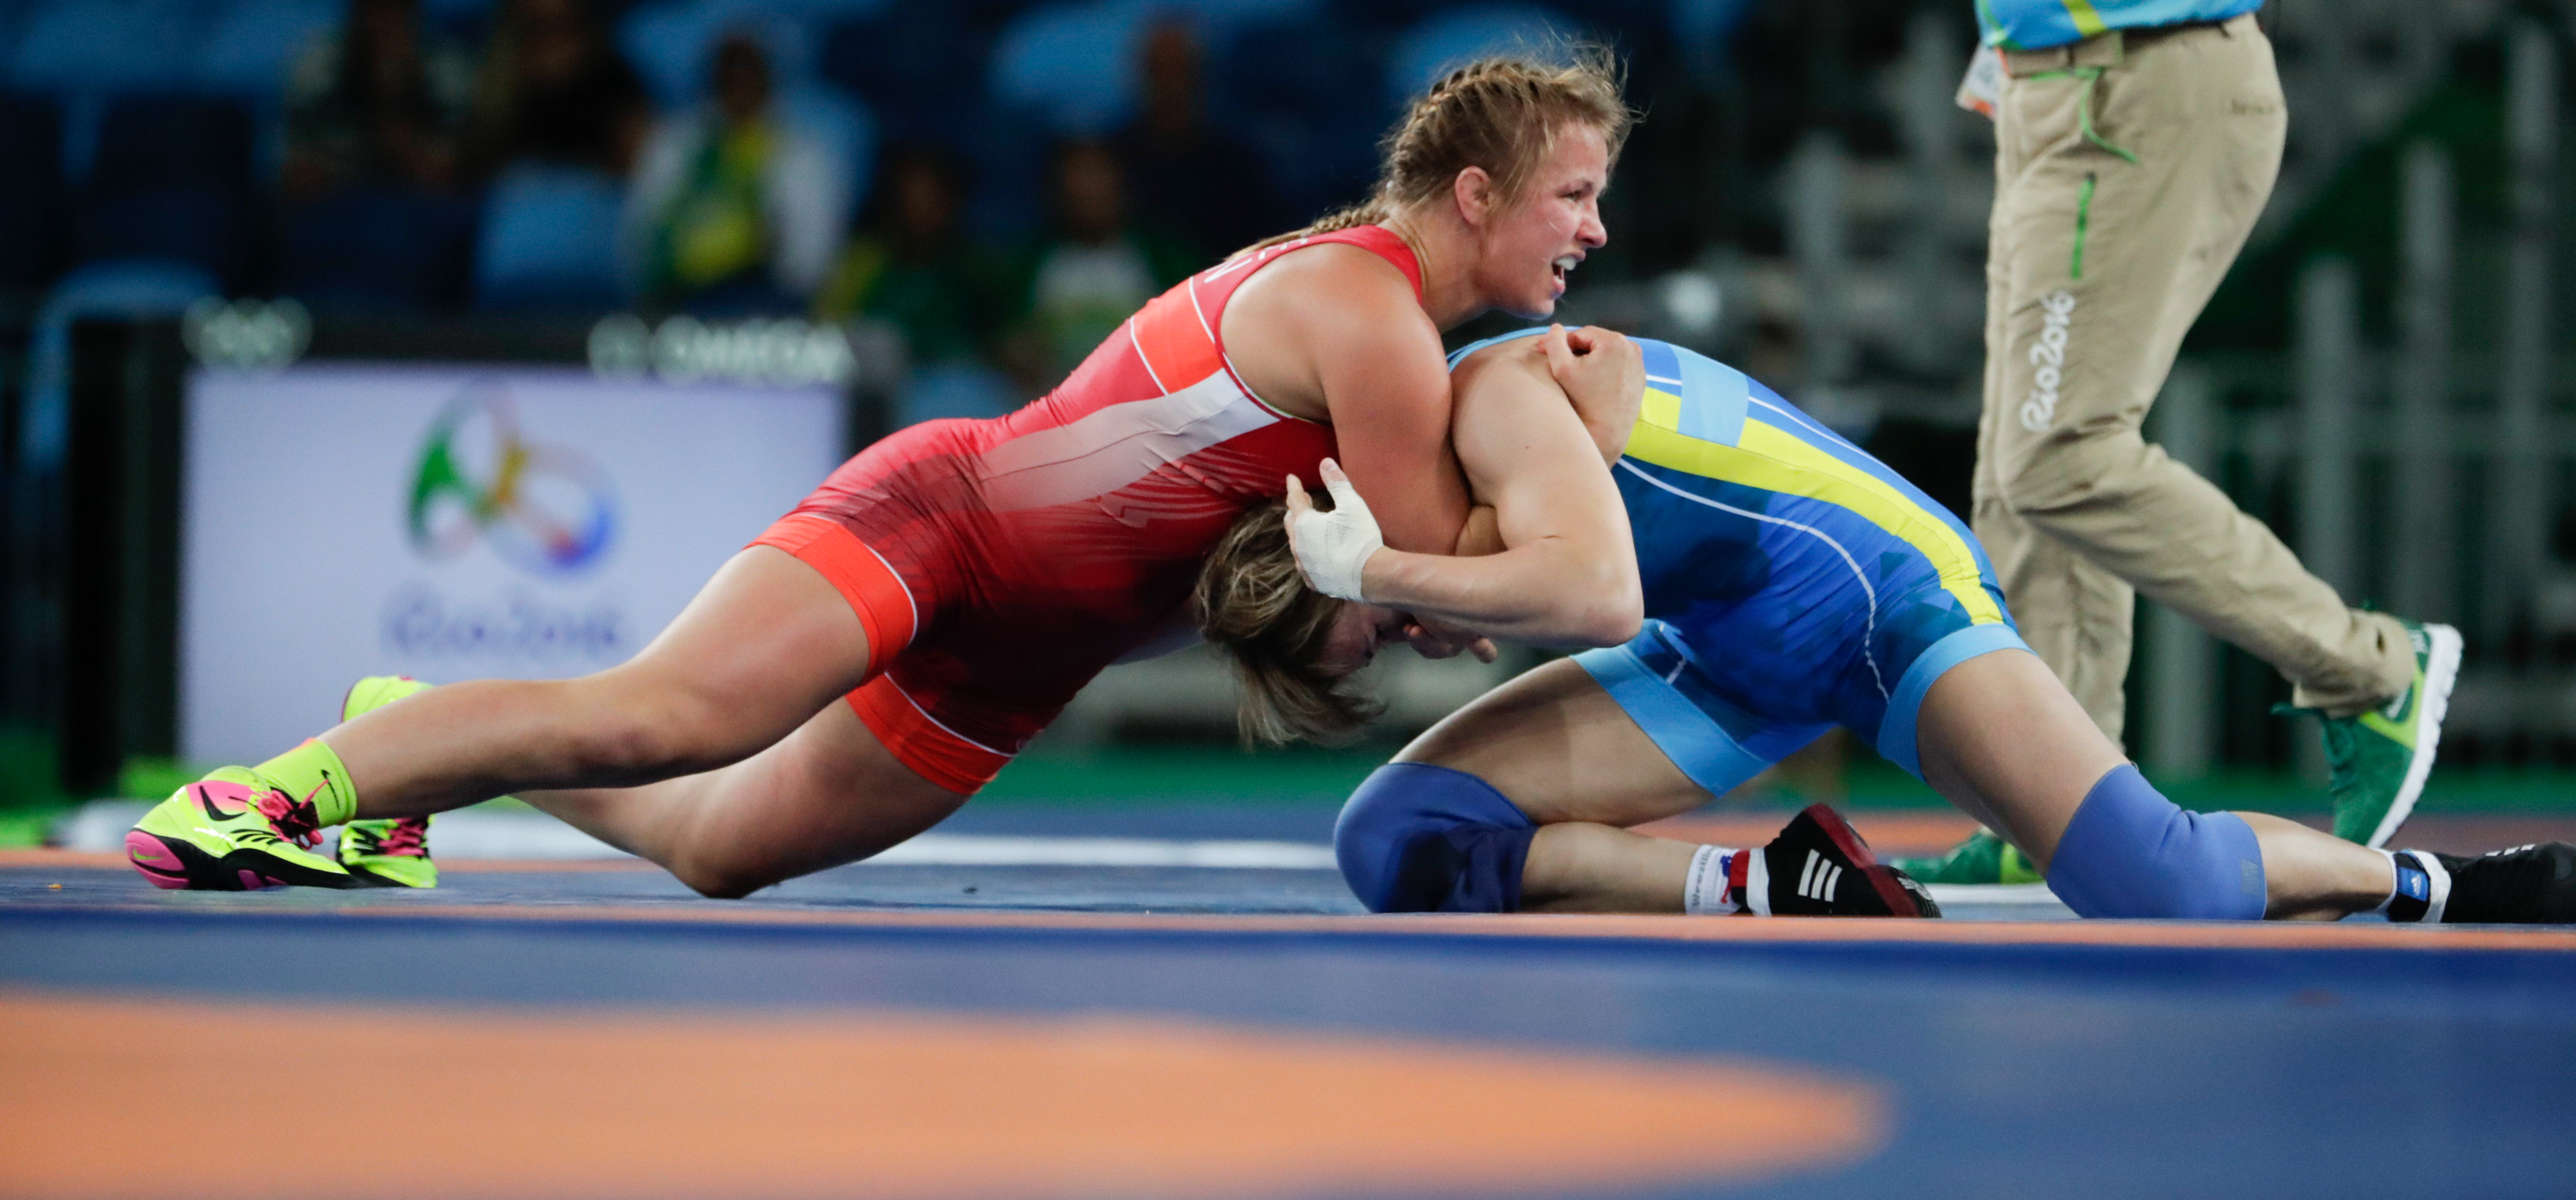 Erica Wiebe wrestles in the 75kg gold medal match at Rio 2016 (COC/Jason Ransom)